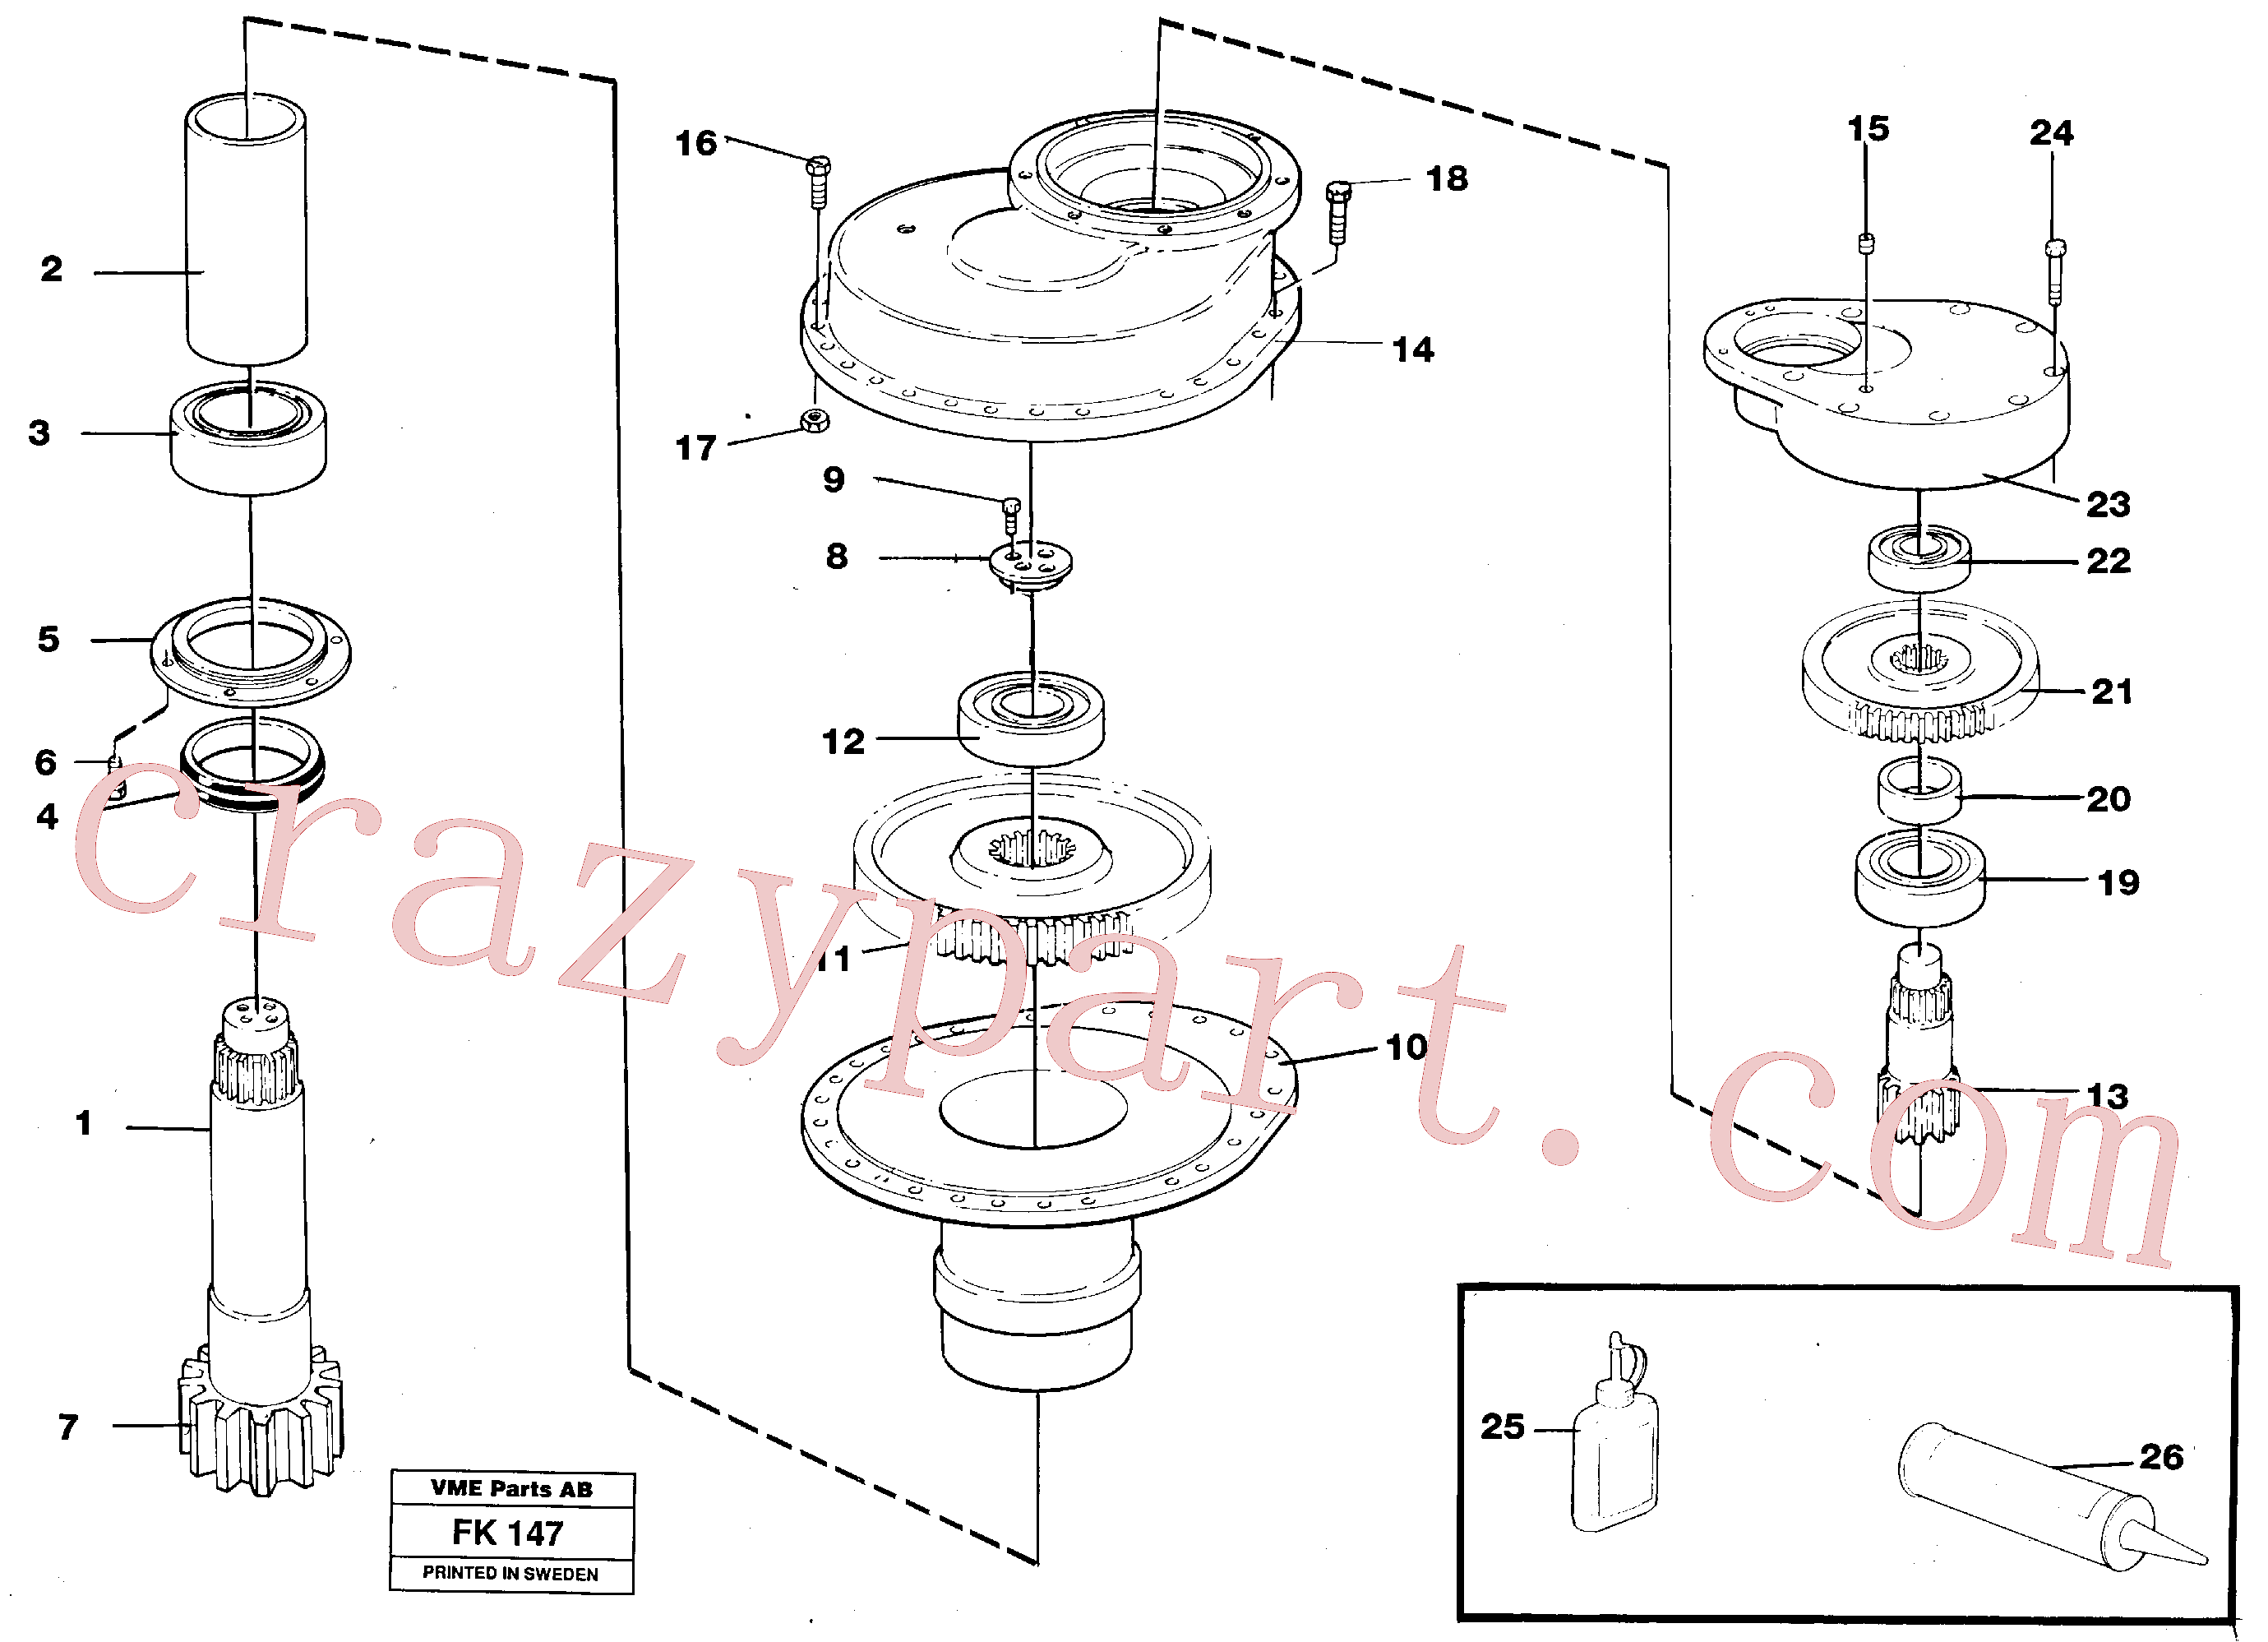 VOE13973244 for Volvo Swing gearbox(FK147 assembly)